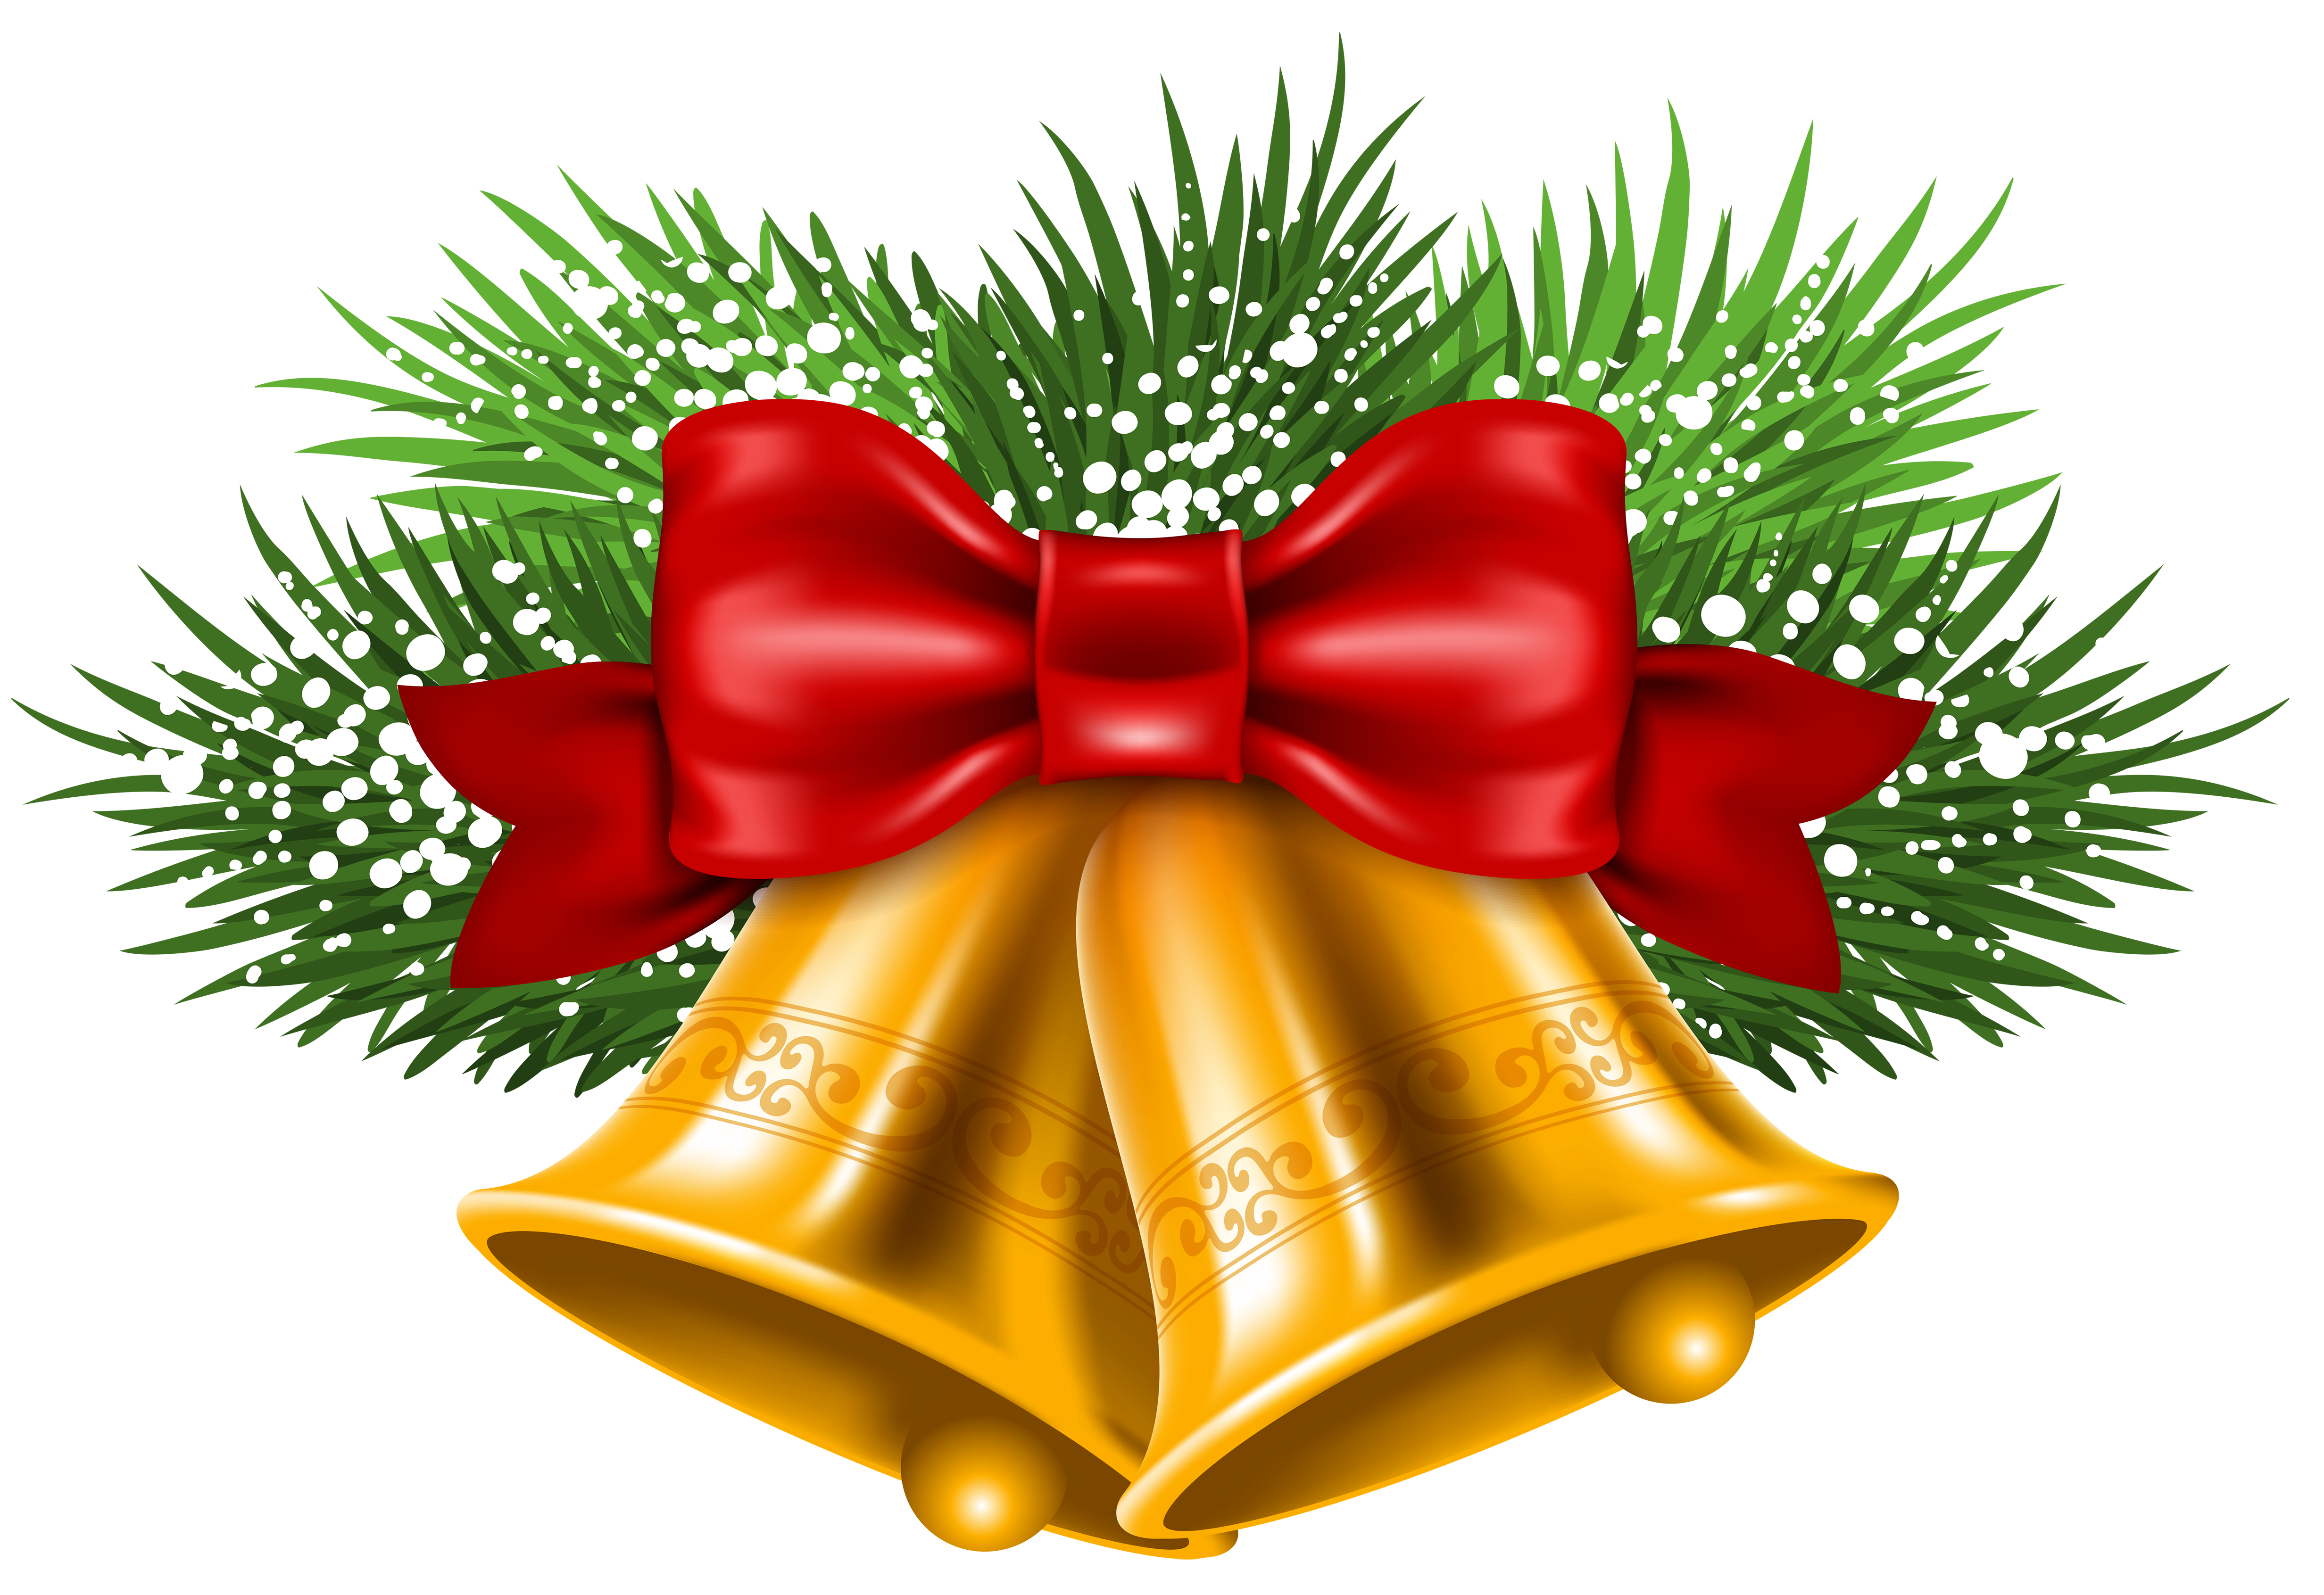 Christmas bell png. Transparent free images only